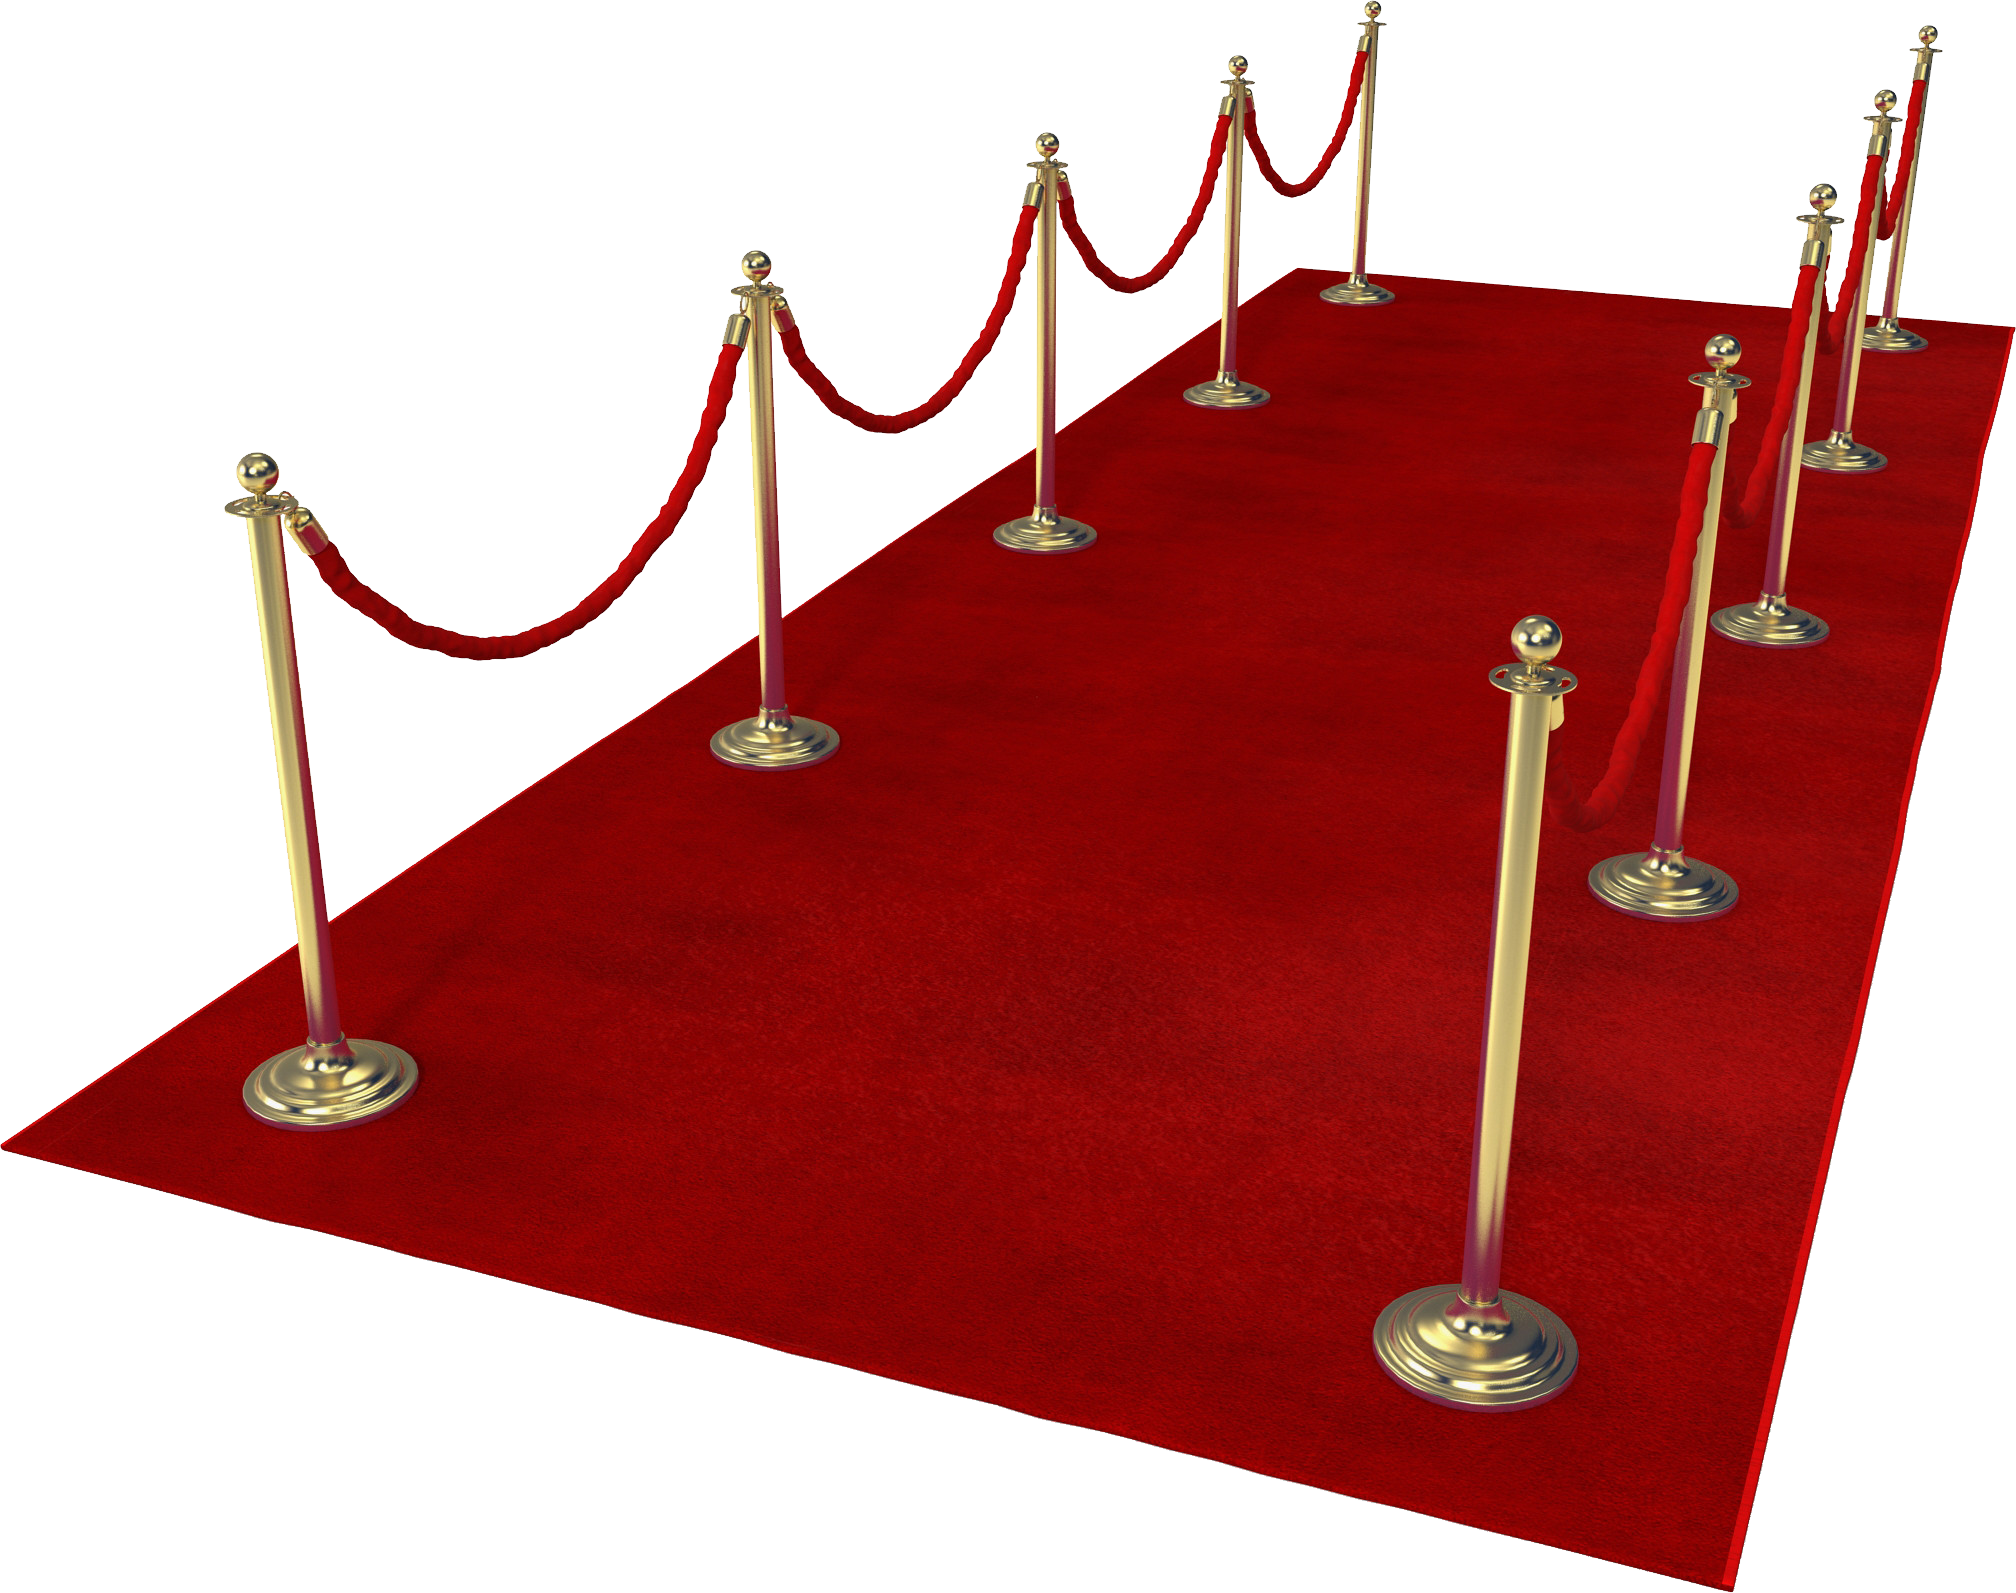 Red carpet png. Image purepng free transparent